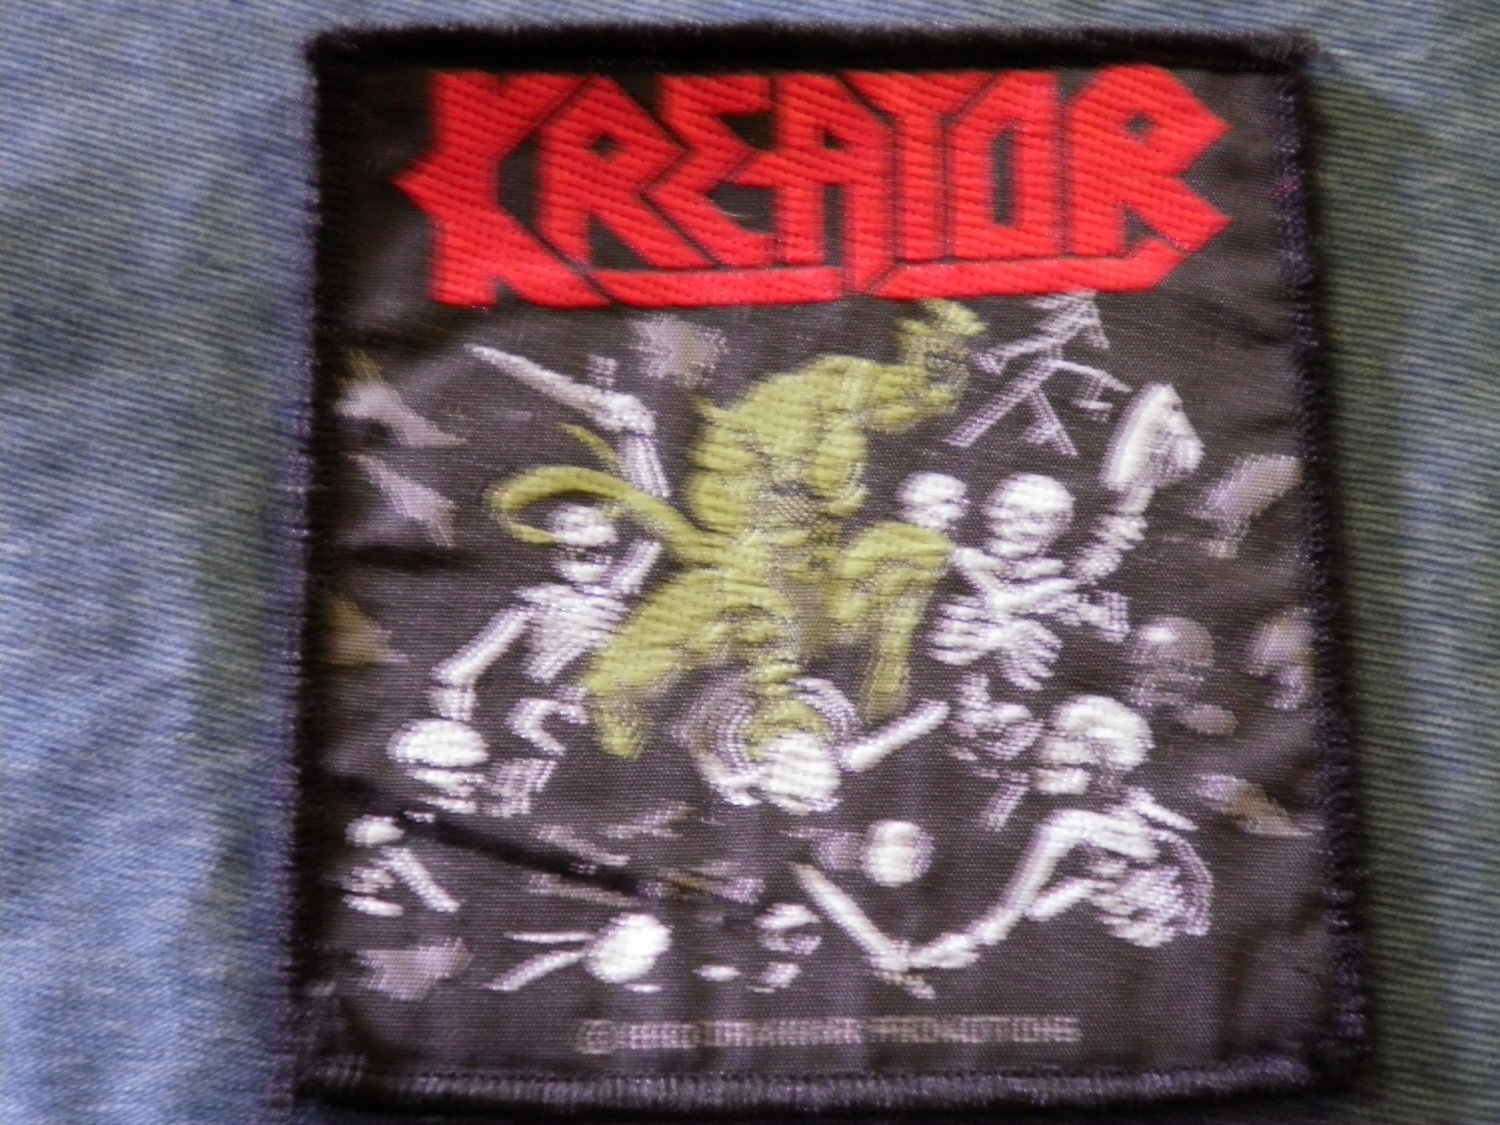 KREATOR sew-on PATCH Pleasure To Kill demon IMPORT